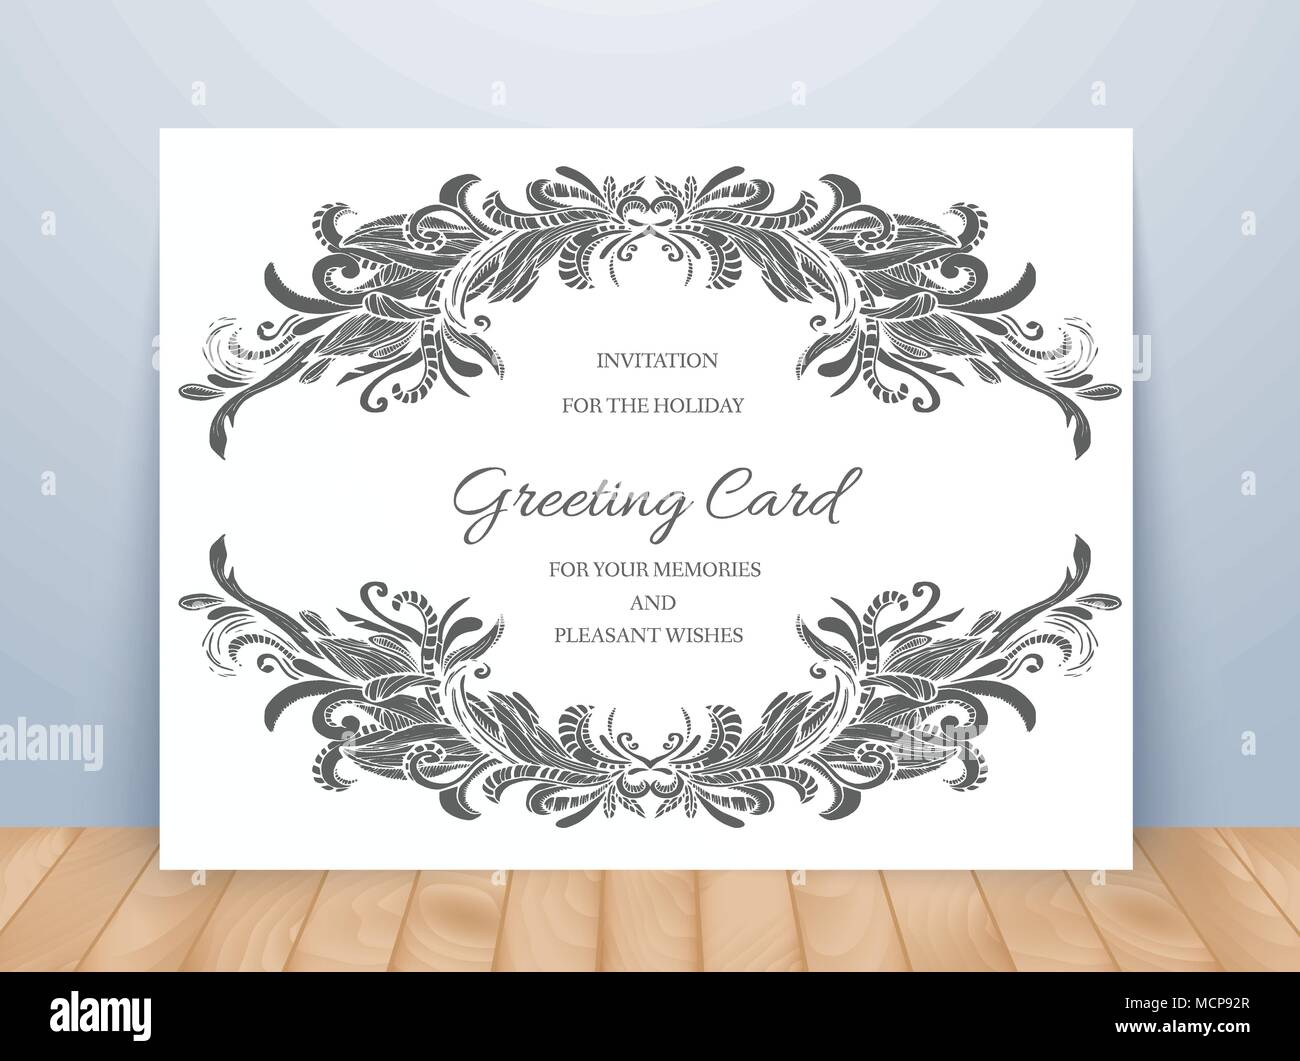 Templates of corporate identity set with doodles abstract ornament templates of corporate identity set with doodles abstract ornament vector illustration backgrounds concepts decorative retro greeting card or invitation stopboris Gallery